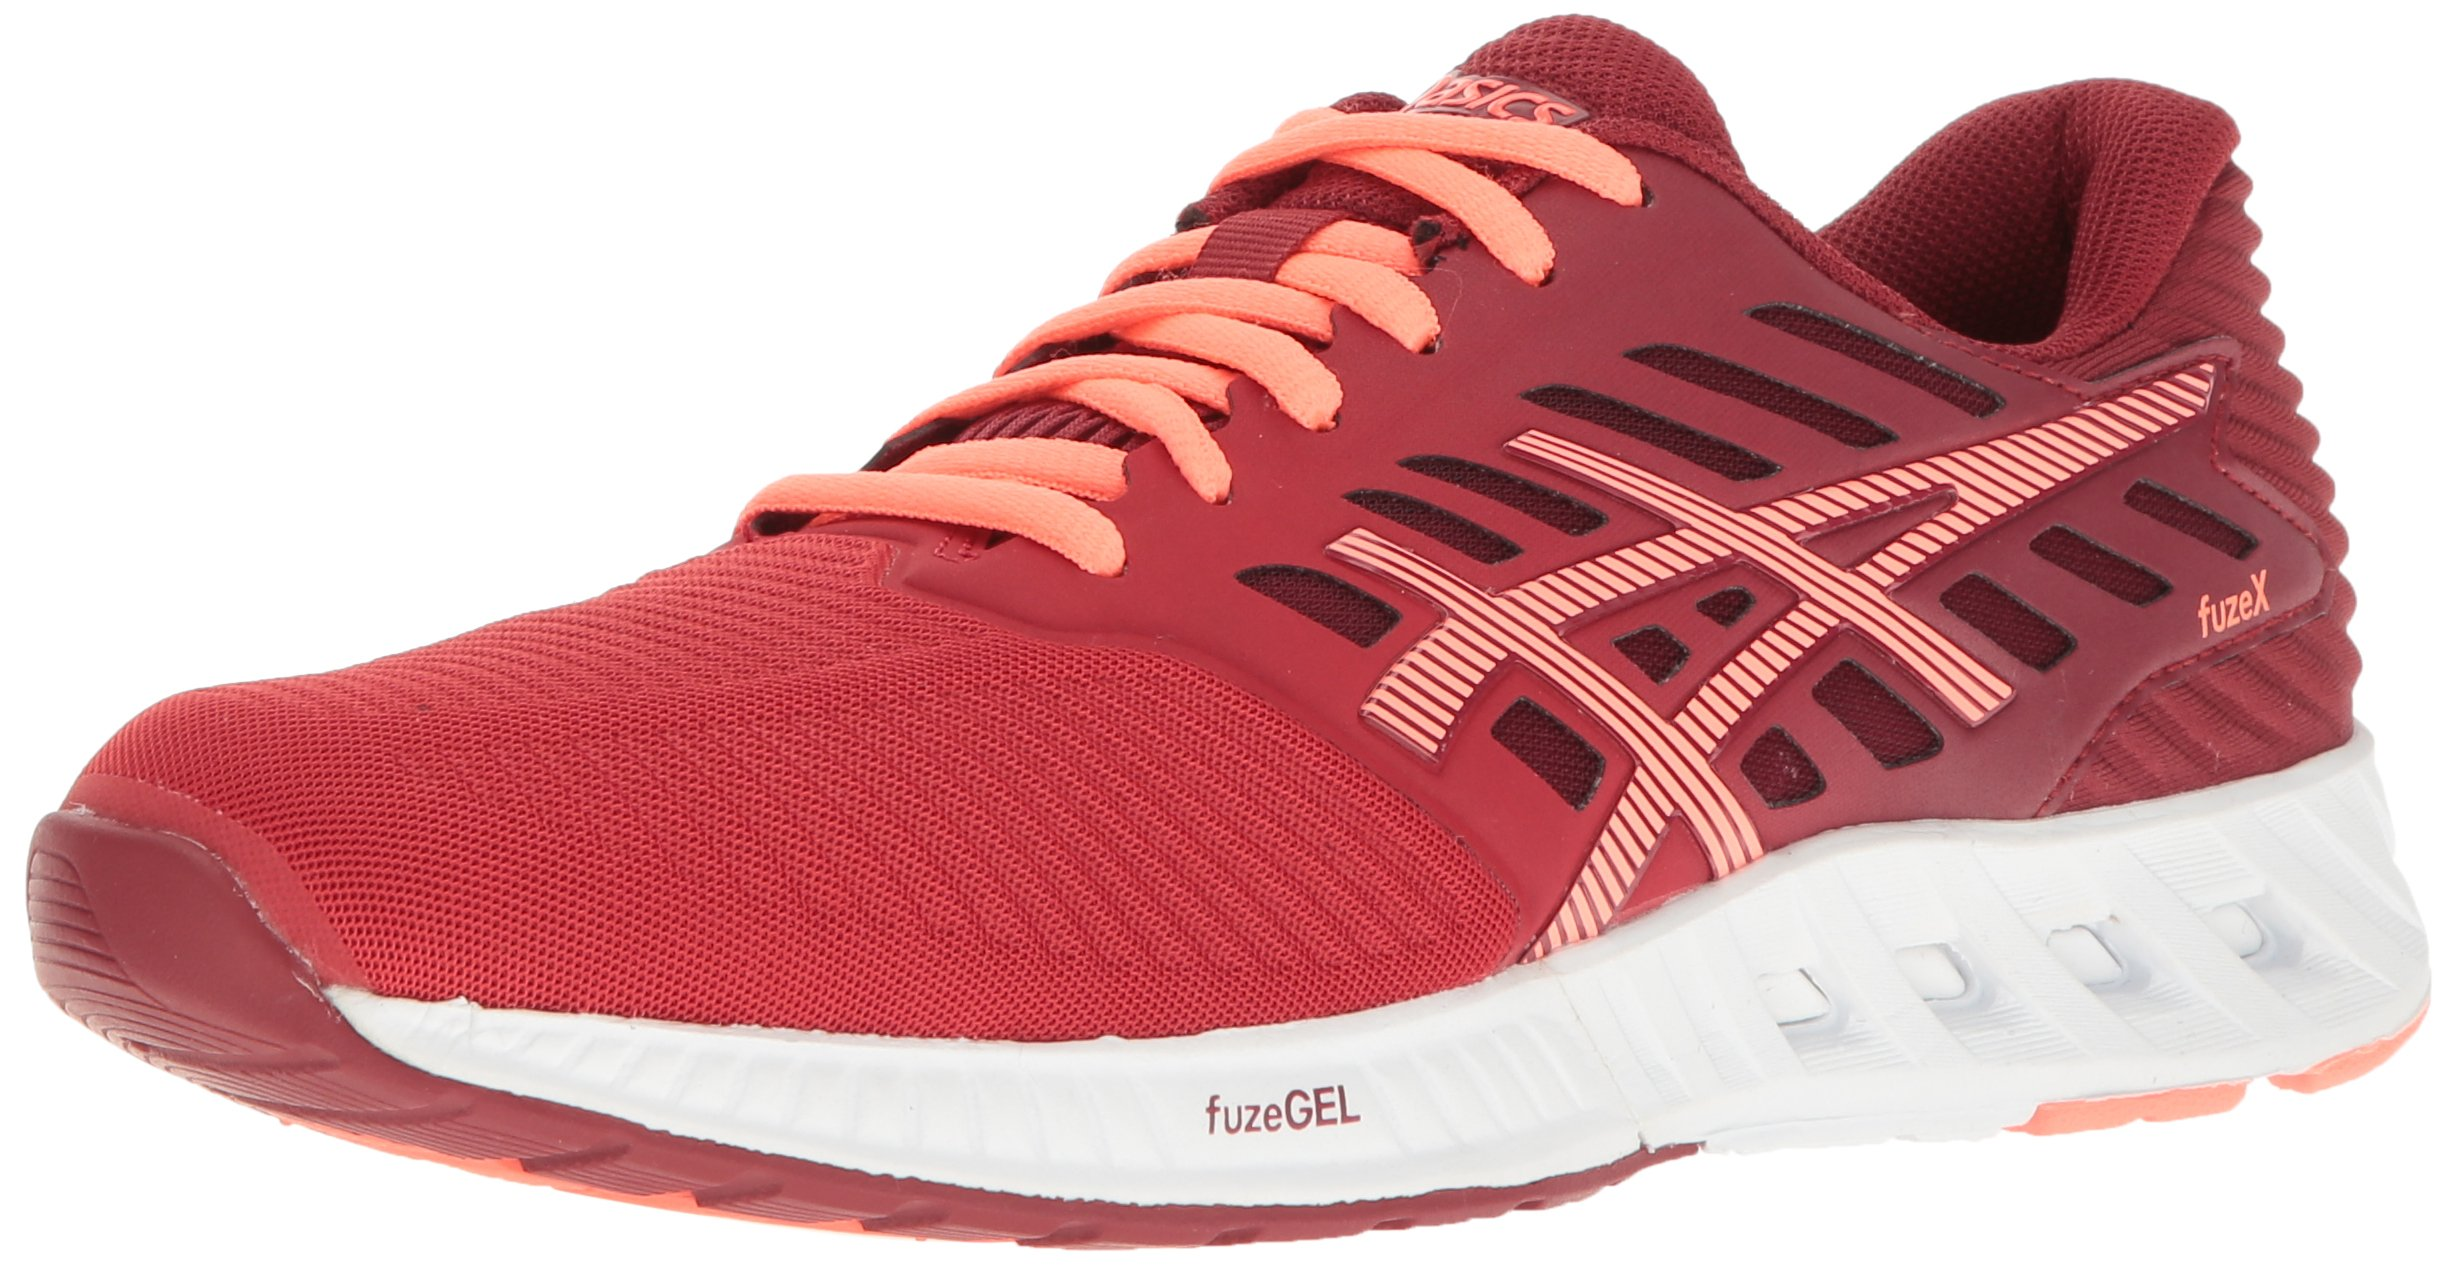 ASICS Women's Fuzex Running Shoe, Oat Red/Flash Coral/True Red, 9 M US